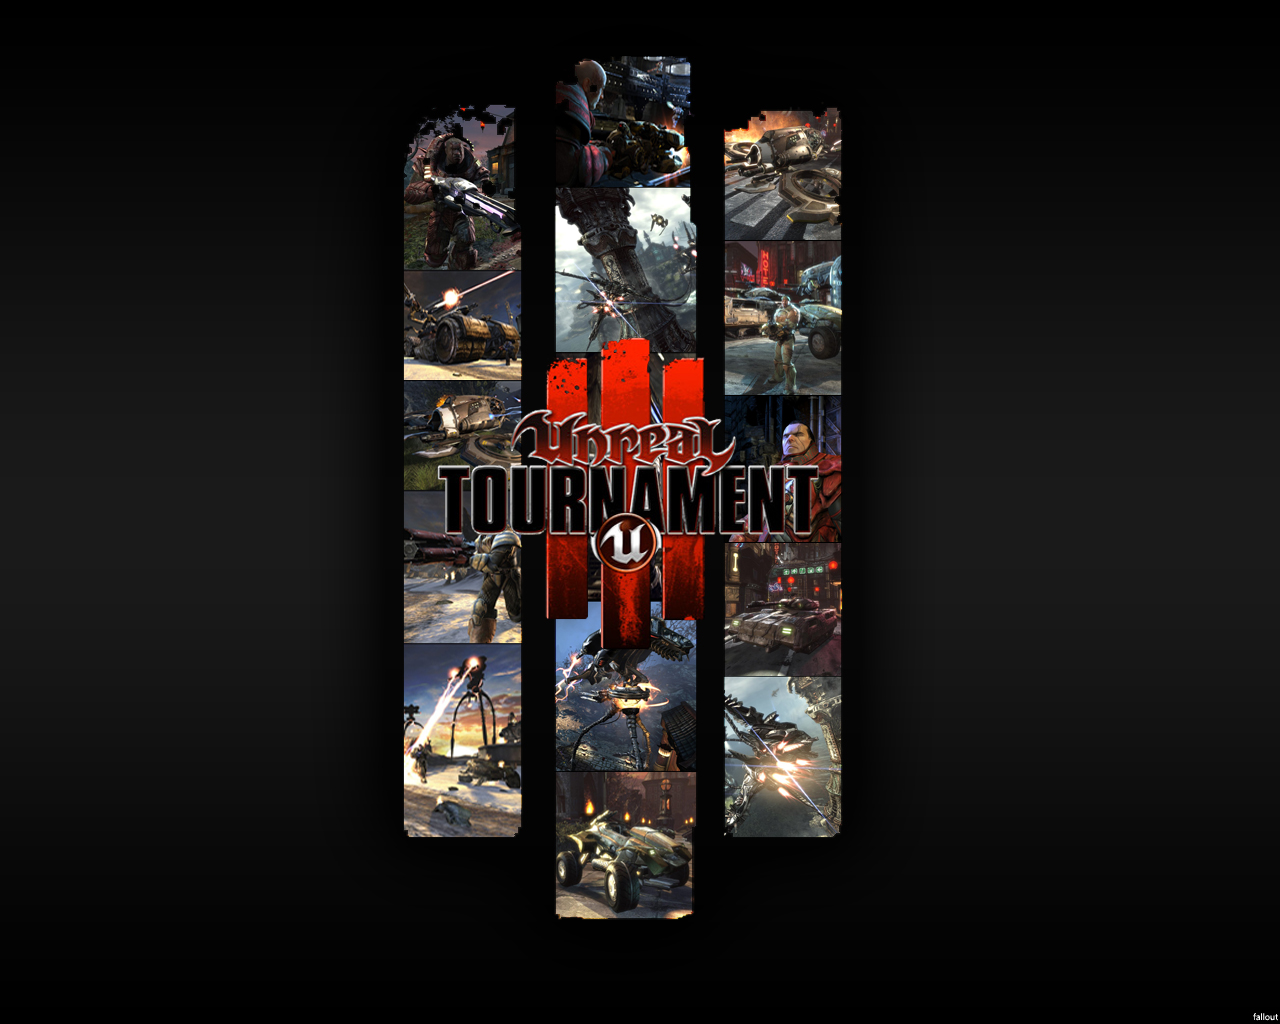 Unreal Tournament 3 Wallpaper By Fallout Boy On Deviantart